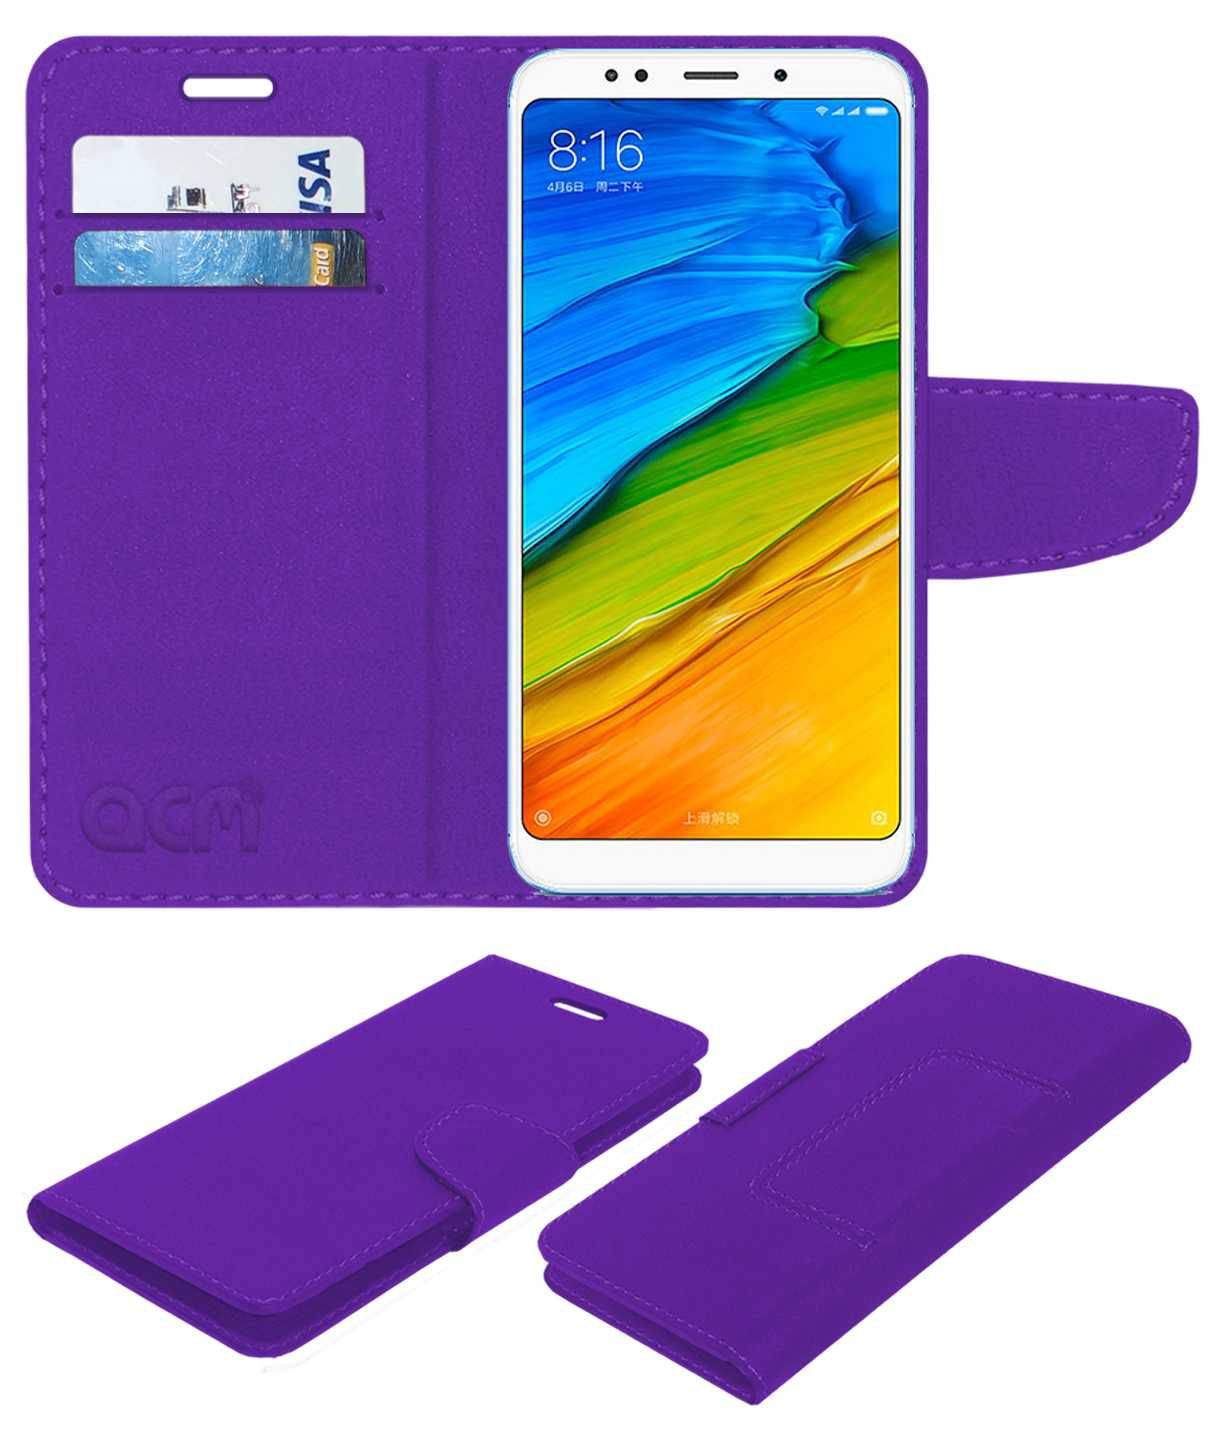 Xiaomi Redmi 5 Plus Flip Cover by ACM - Purple